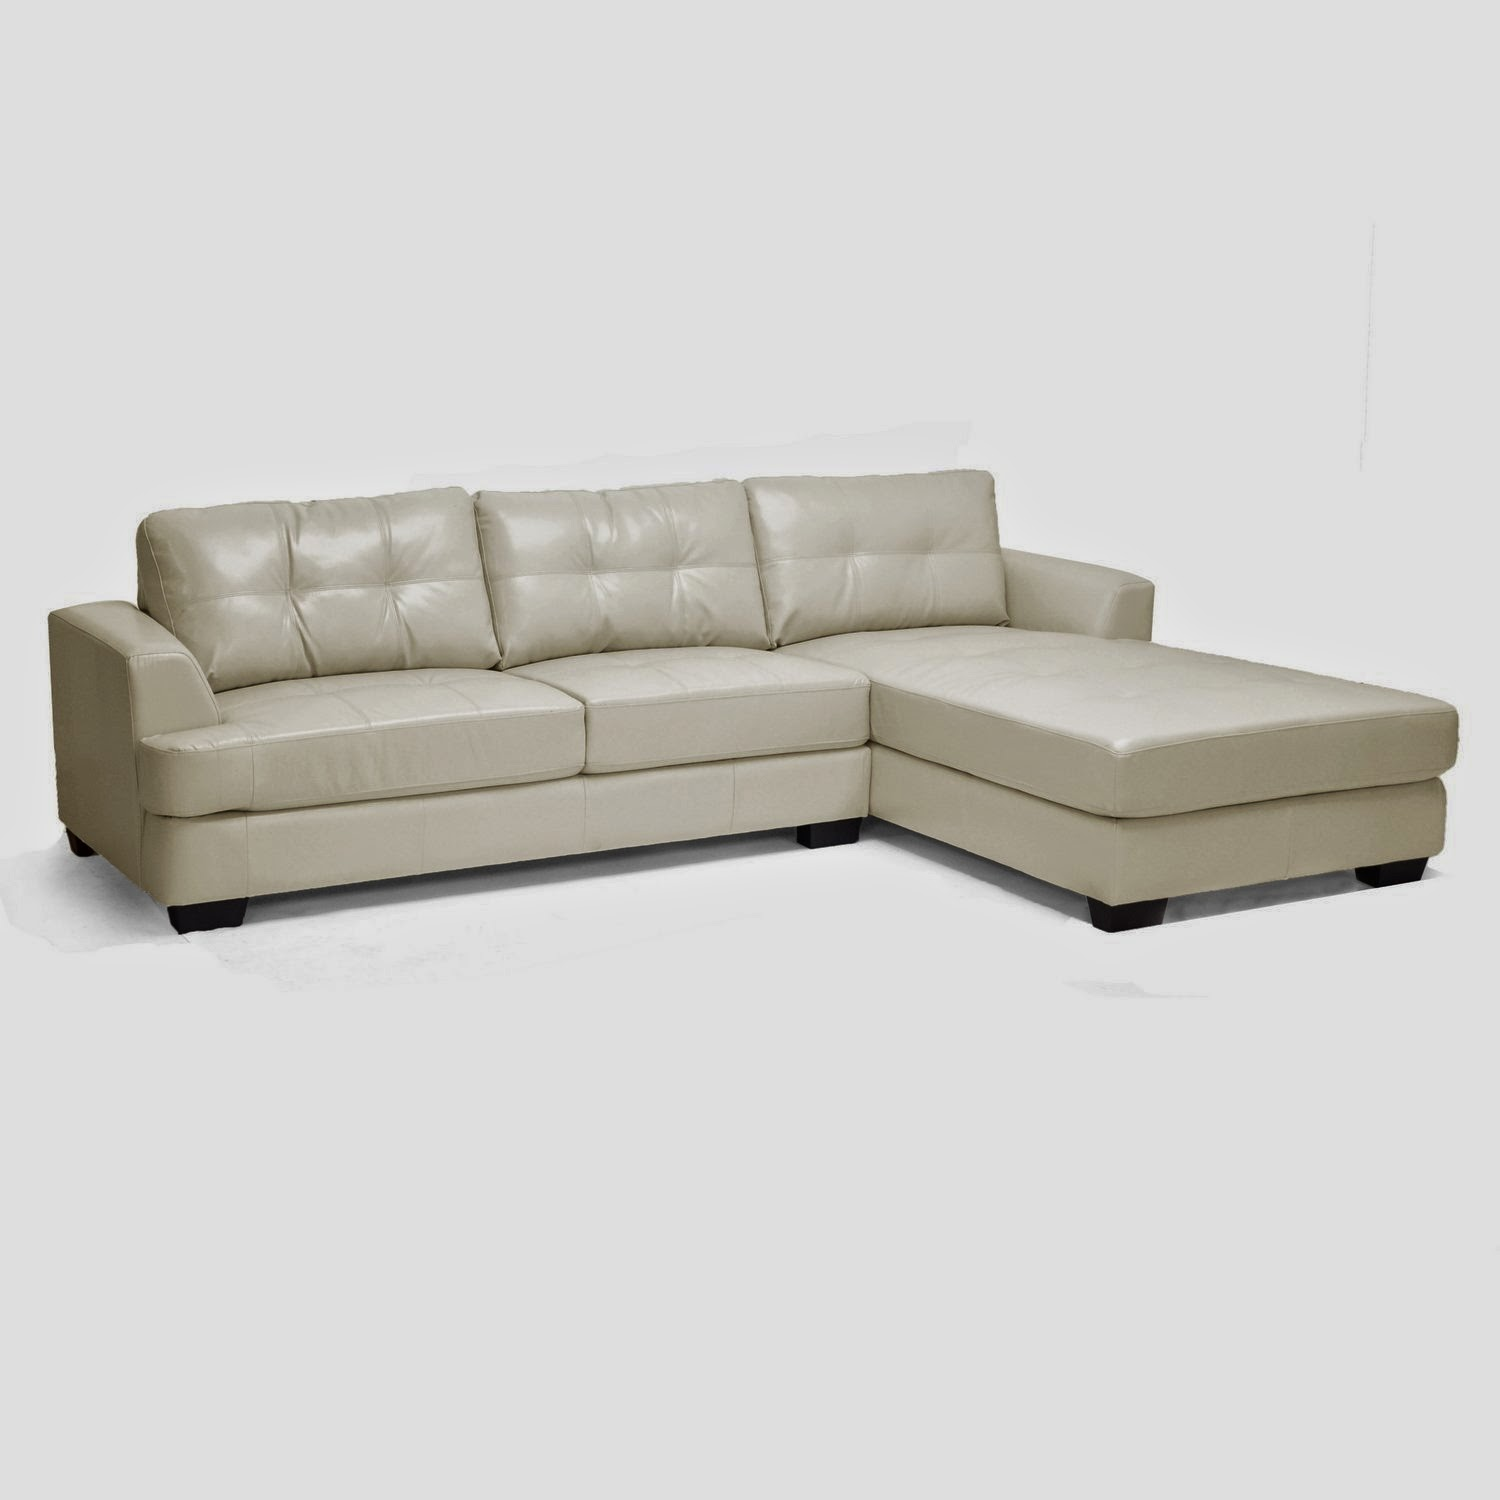 Couch with chaise leather couch with chaise lounge for Chaise lounge com